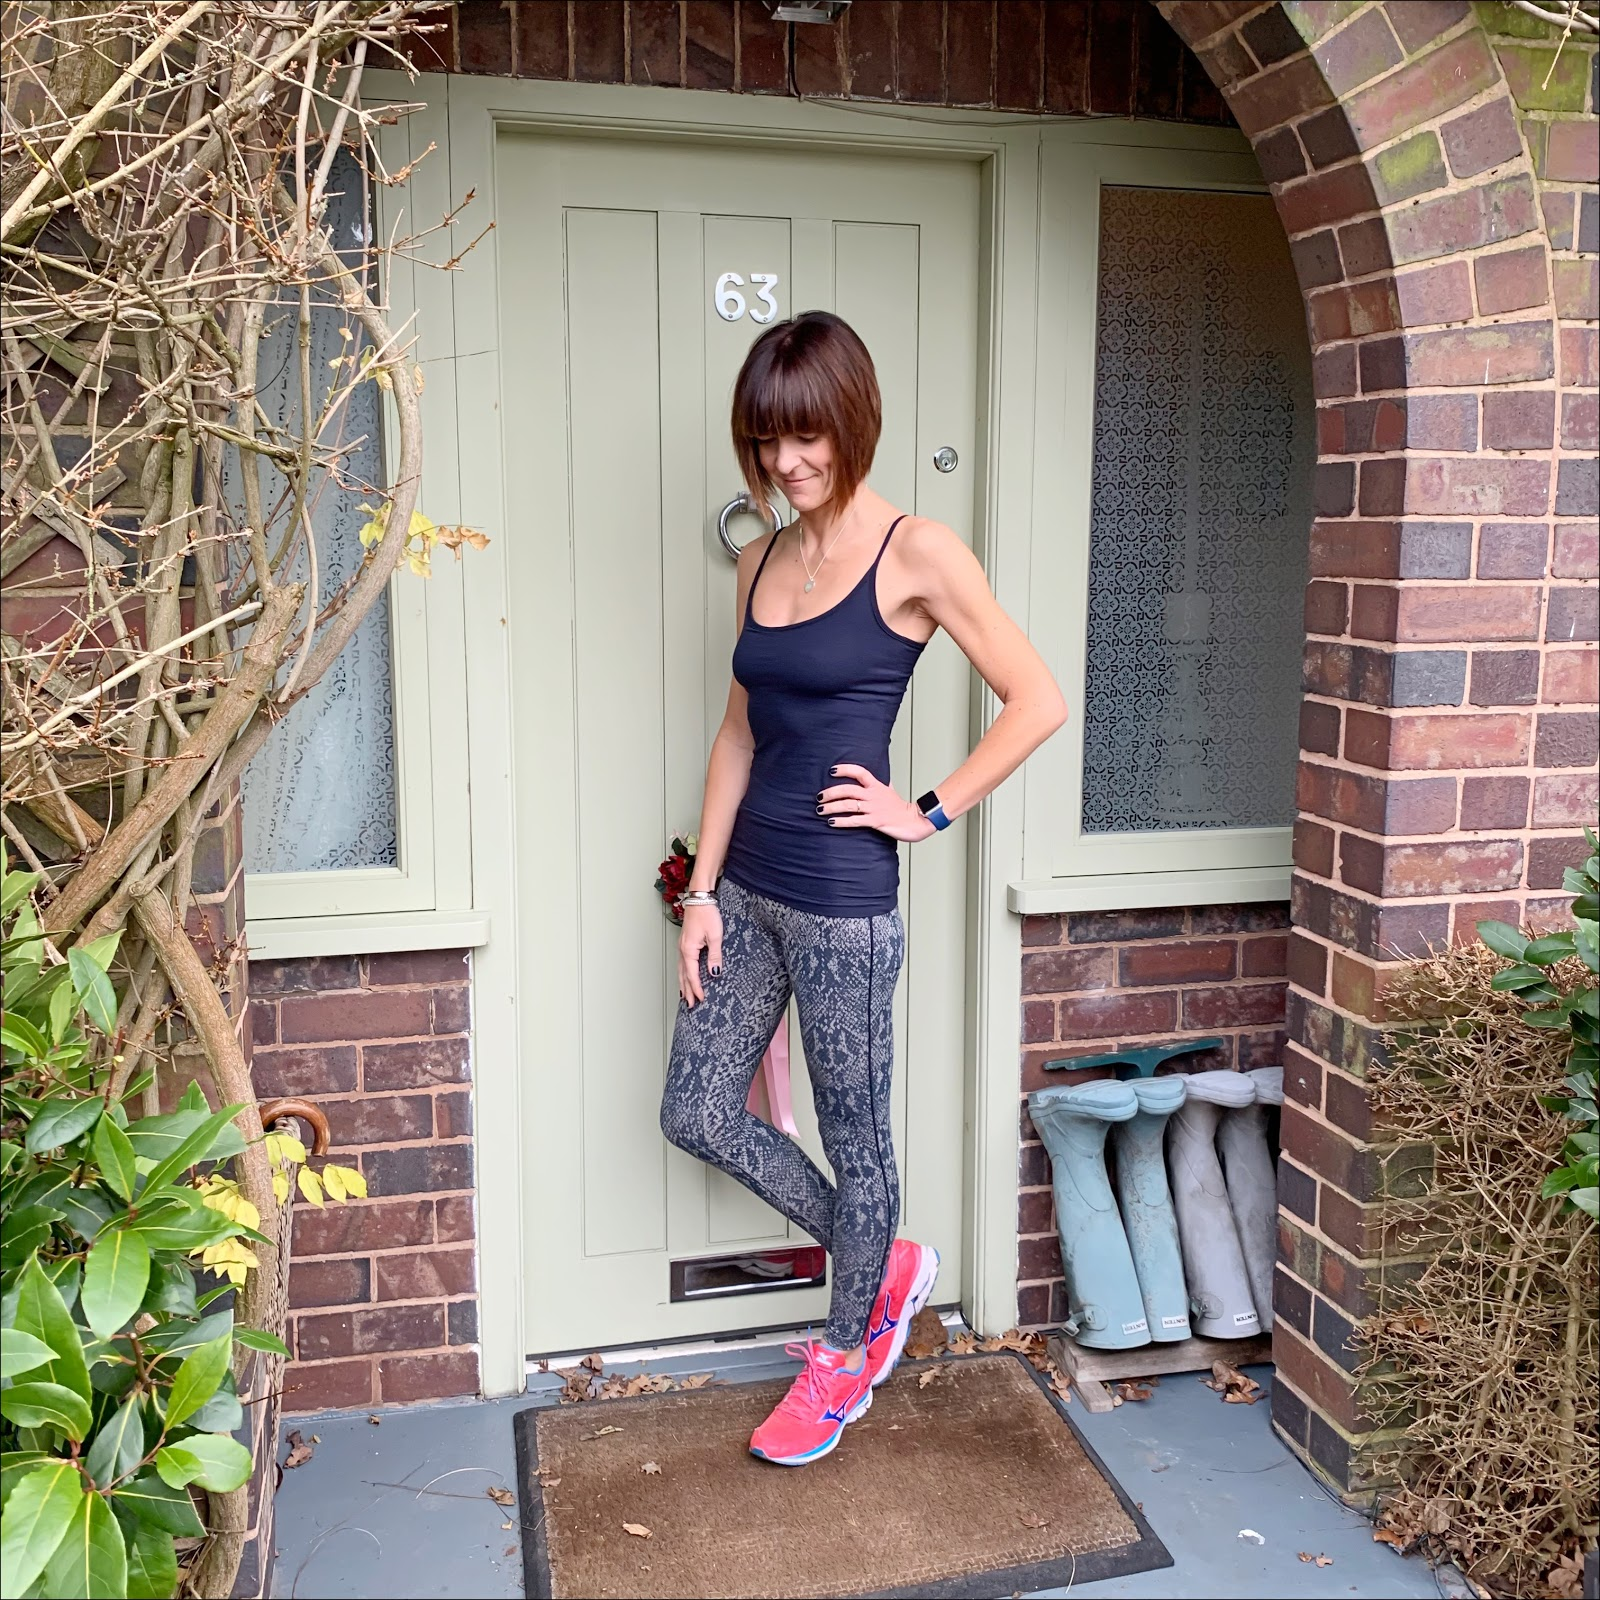 my midlife fashion, asquith london, asquith pure cami, asquith flow with it leggings in snake, mizuno wave rider trainers